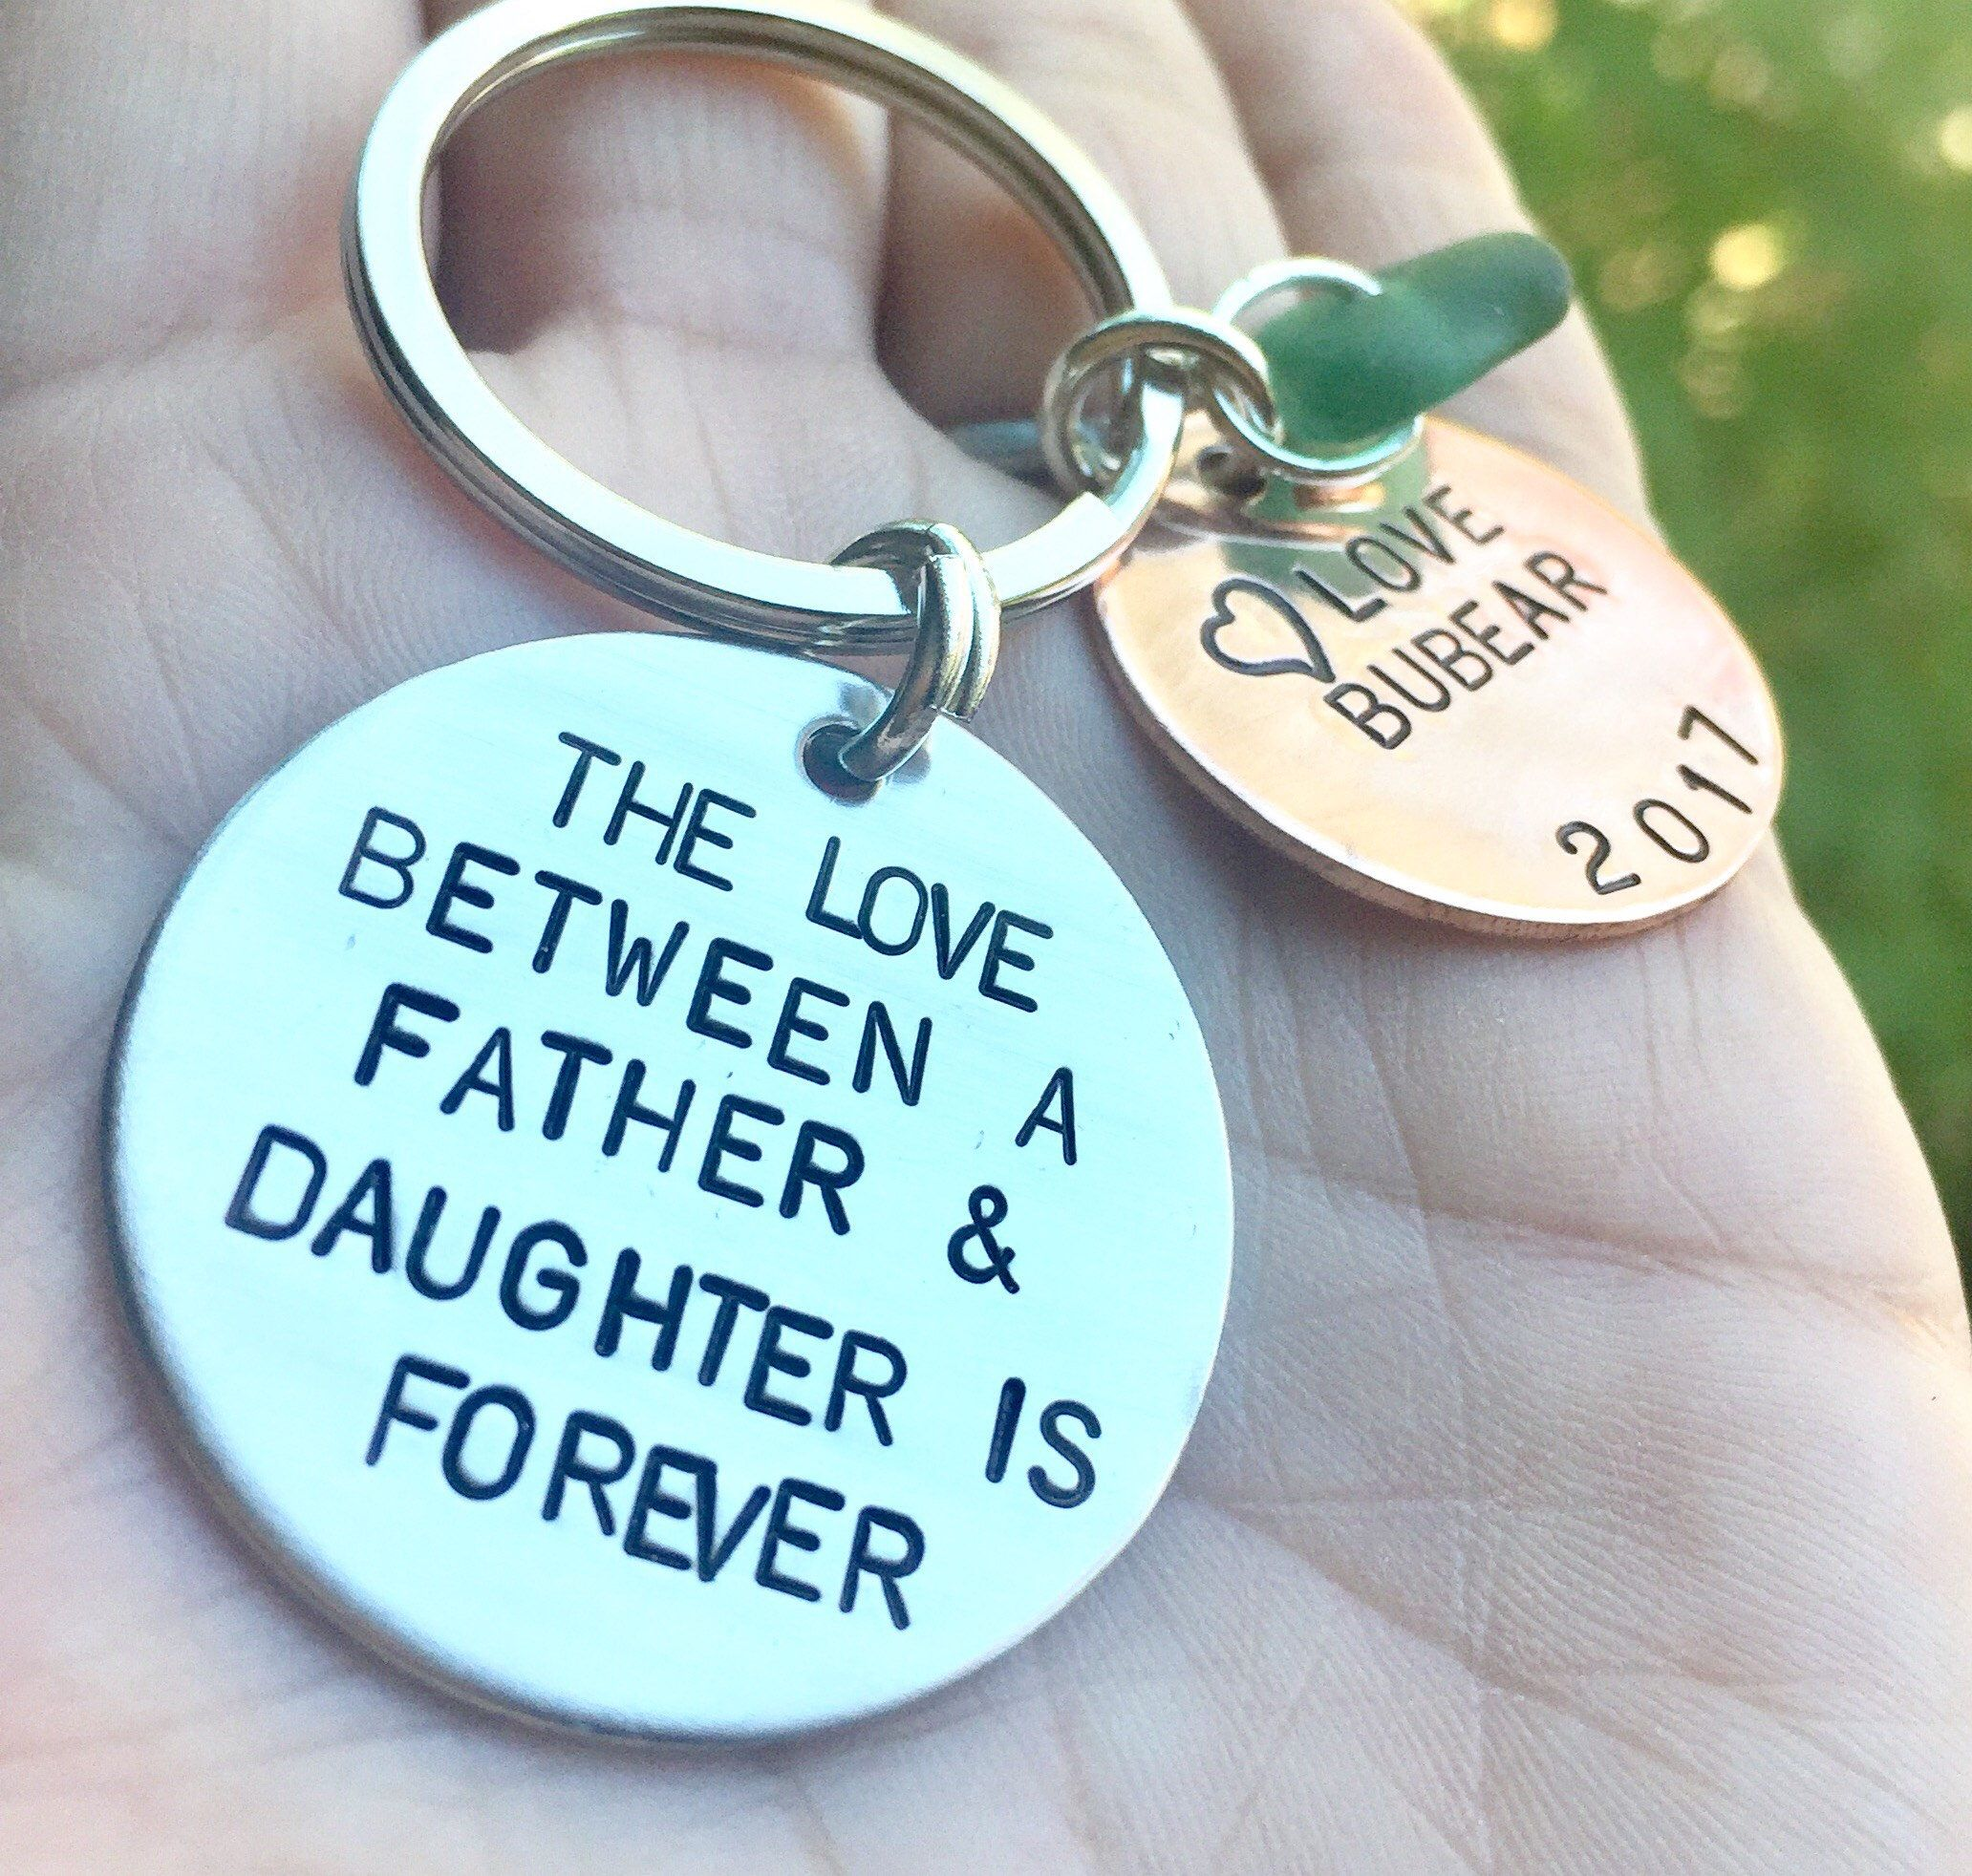 Christmas gifts love between a father and daughter is